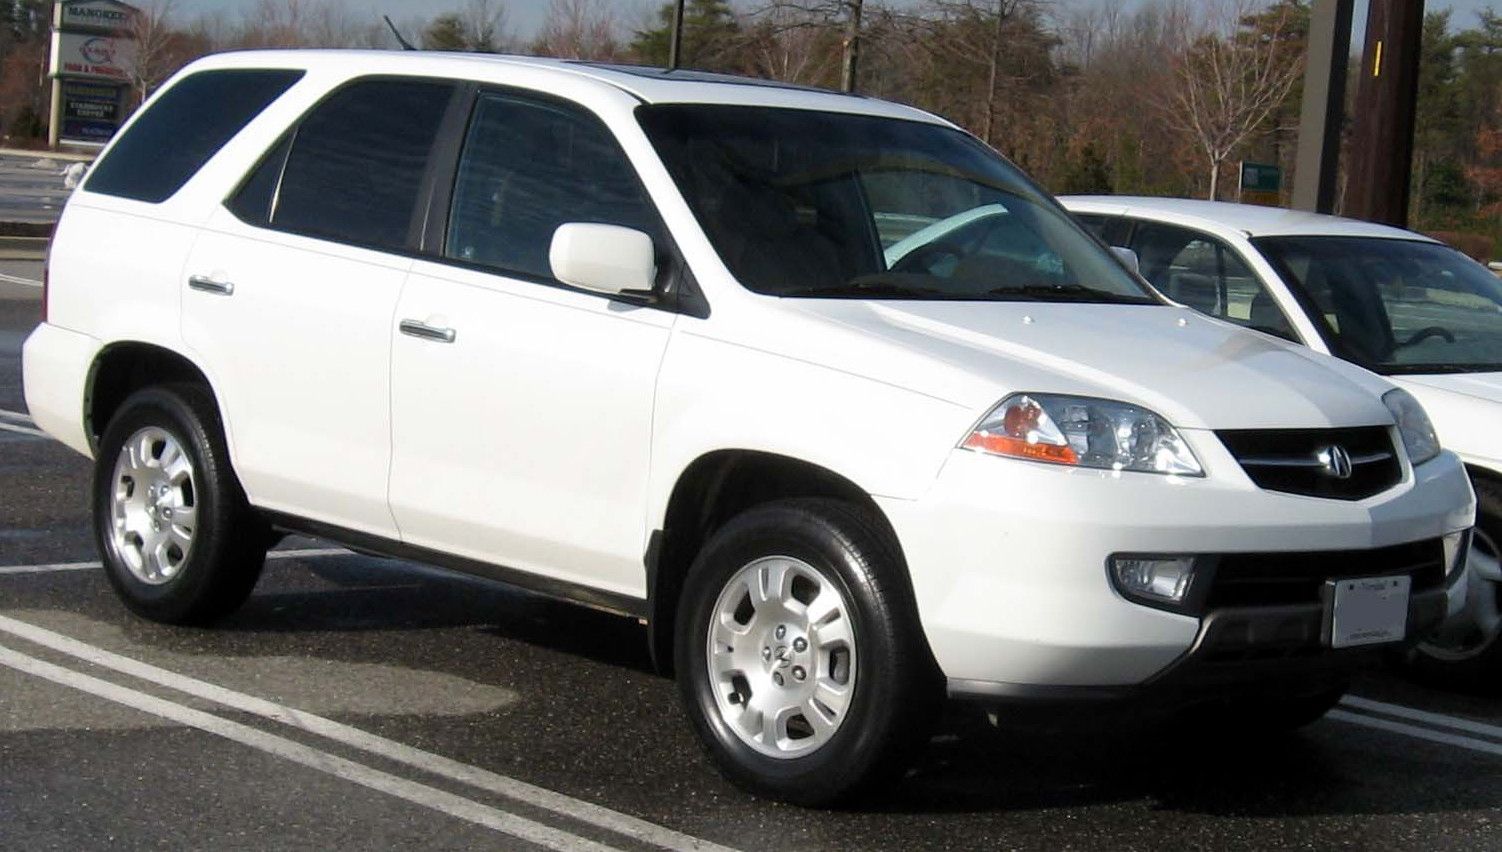 File:2001-2003 Acura MDX.jpg - Wikimedia Commons